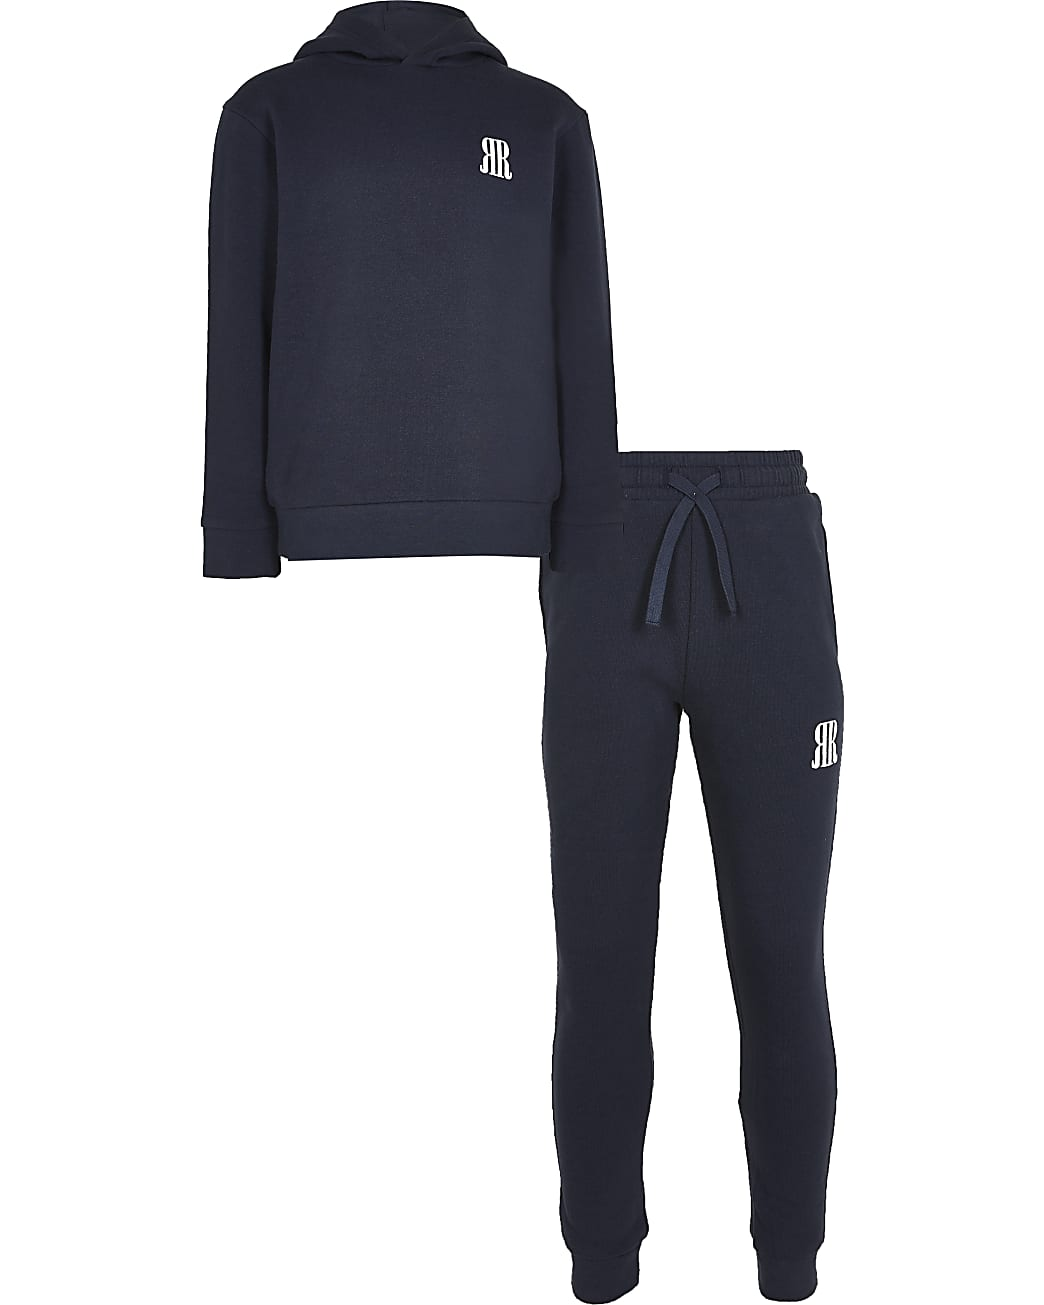 Boys navy RR hoodie and jogger outfit